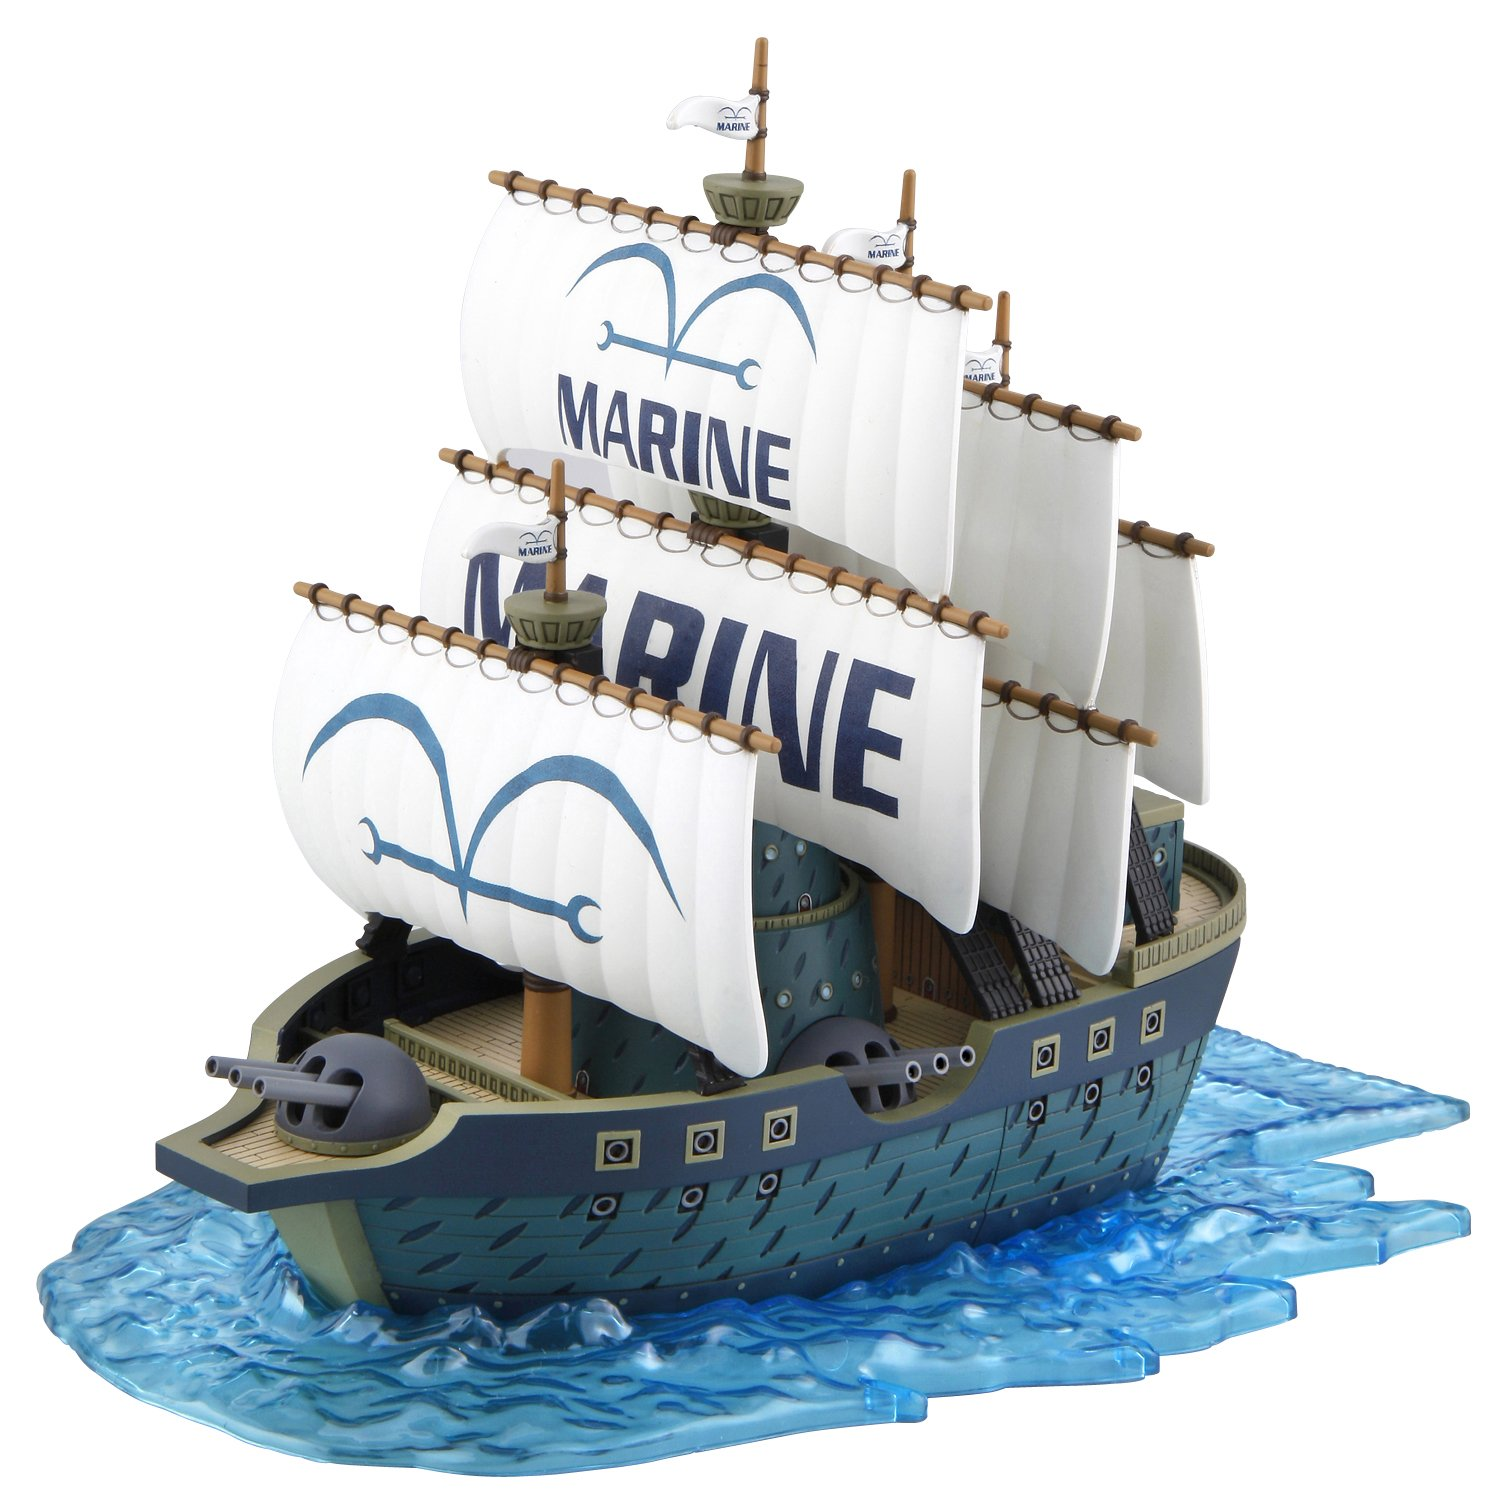 Bandai Hobby 07 Grand Collection Schiff Marine One Piece Model Kit Bluefin Distribution Toys BAN181585